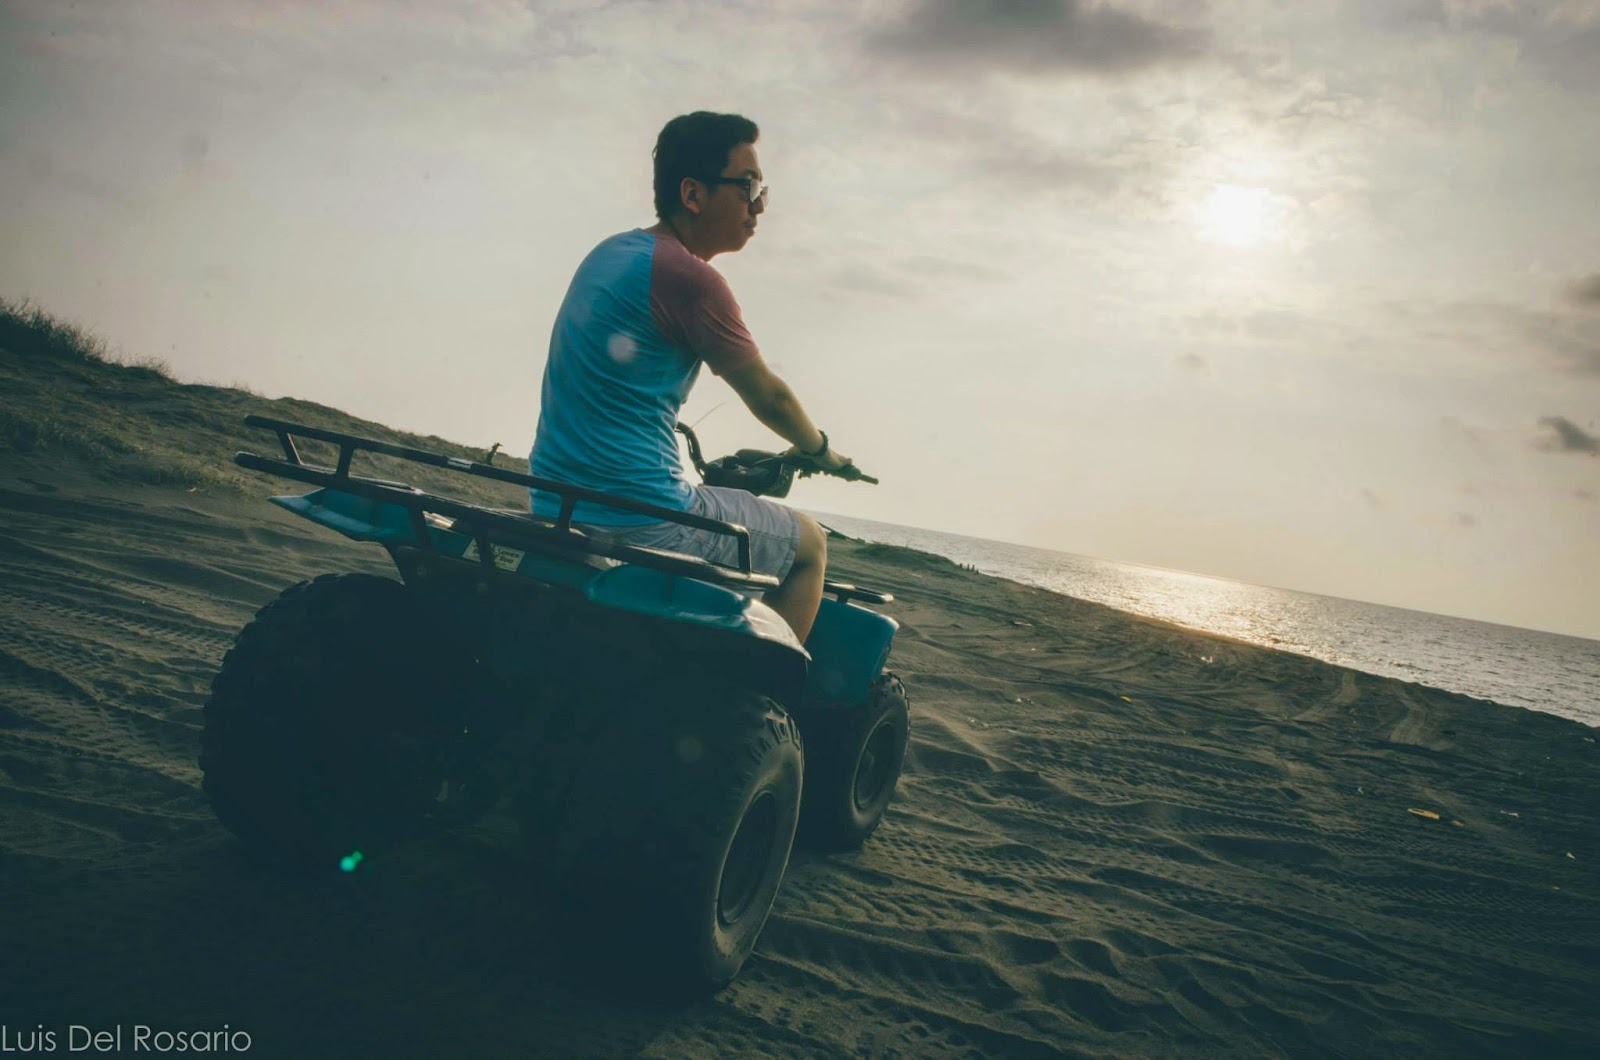 Riding the ATV in the sand dunes of Paoay, Ilocos Norte